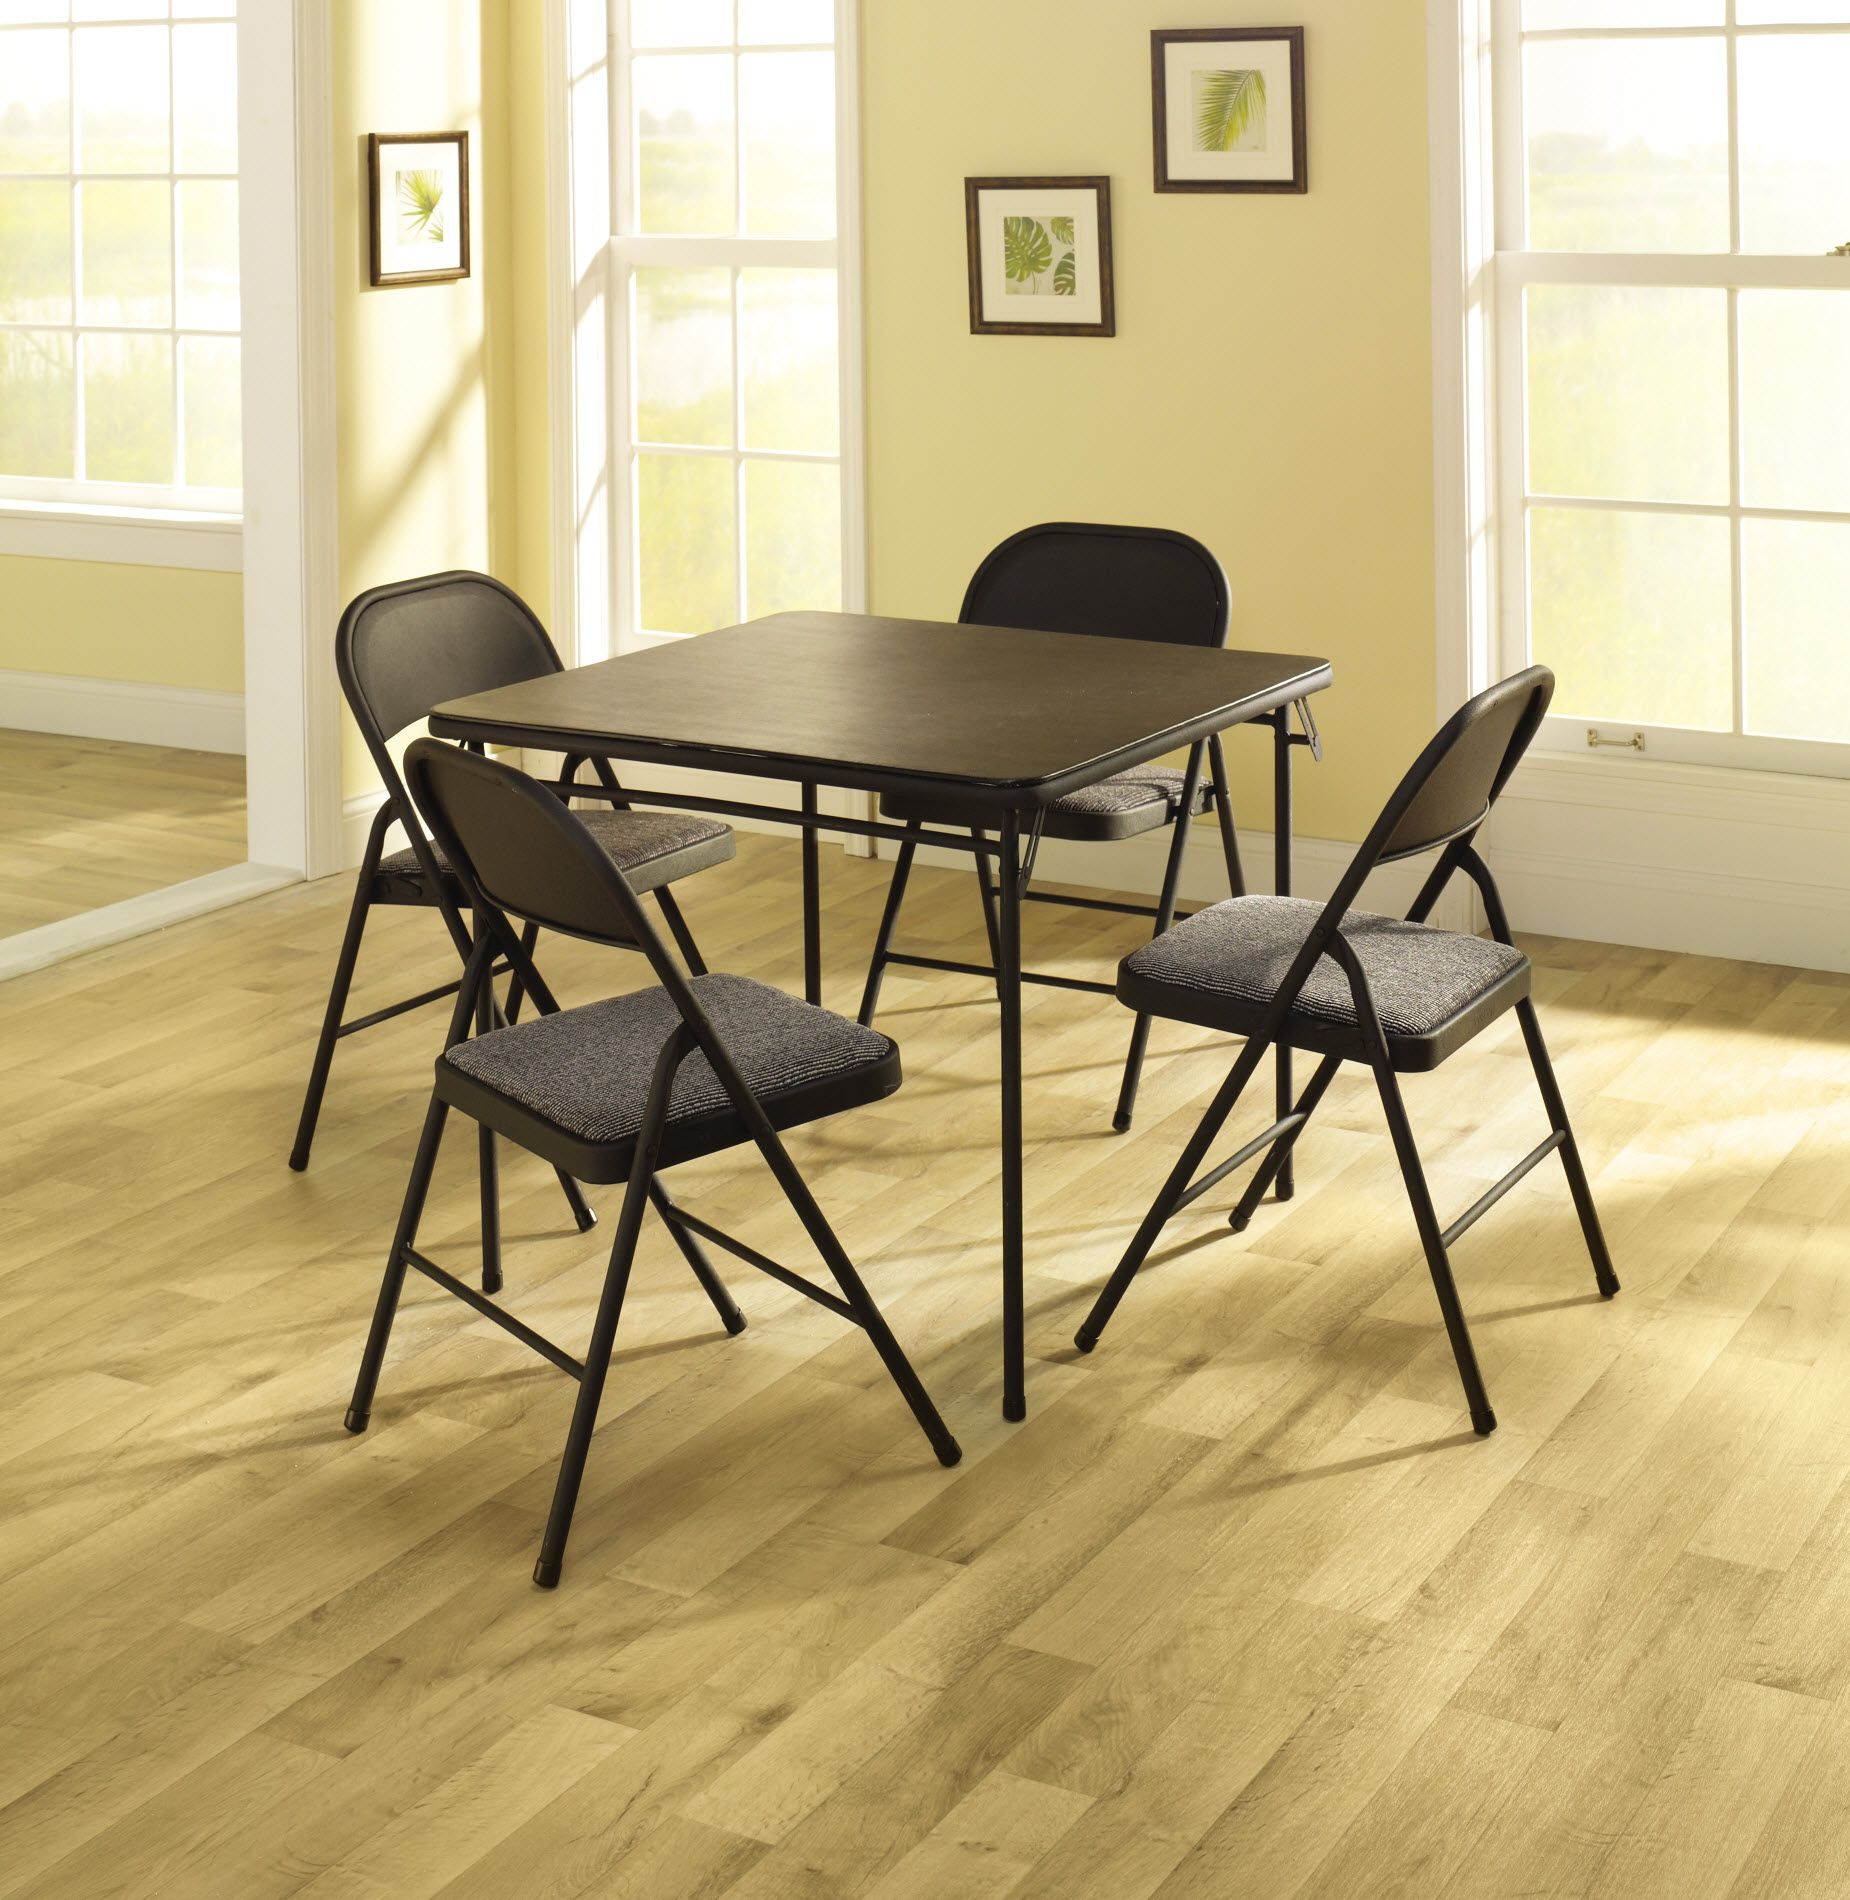 Cosco Home and Office Products 5 Piece Set with Vinyl Table Top and Fabric Chairs